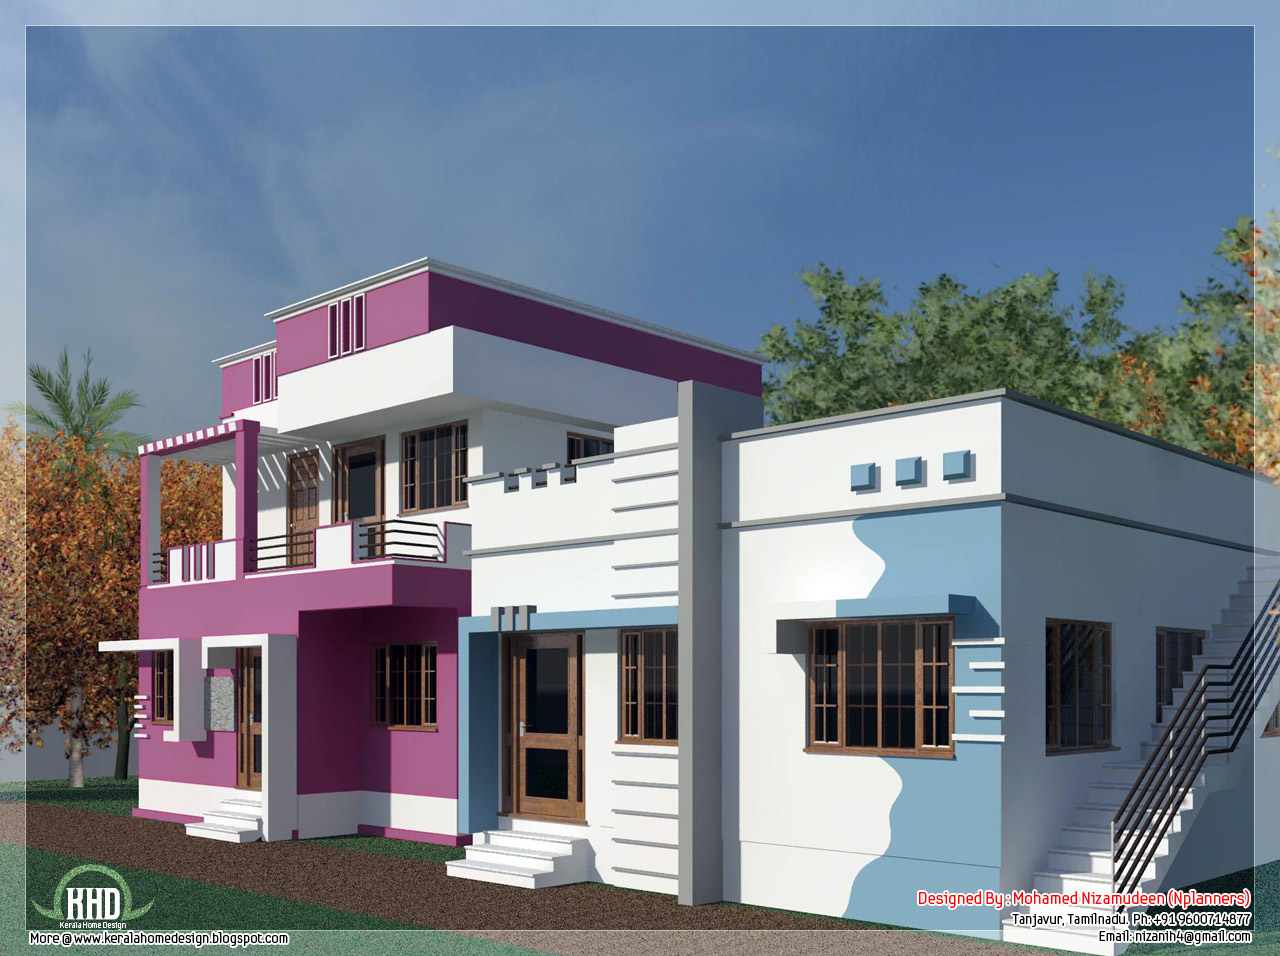 Tamilnadu model home design in 3000 indian house for Indian house model